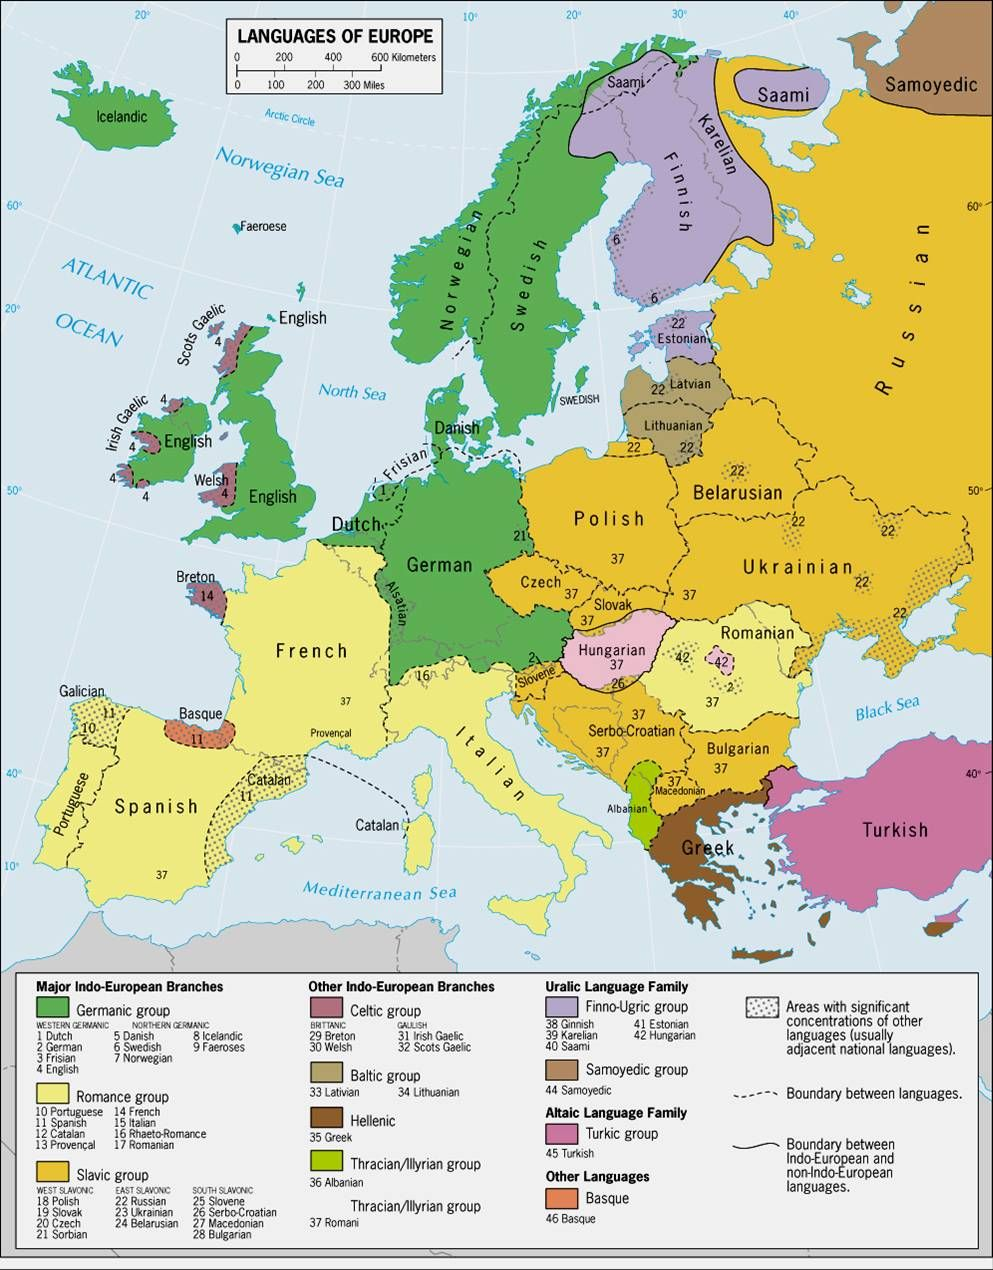 Languages of Europe classification by linguistic family Source